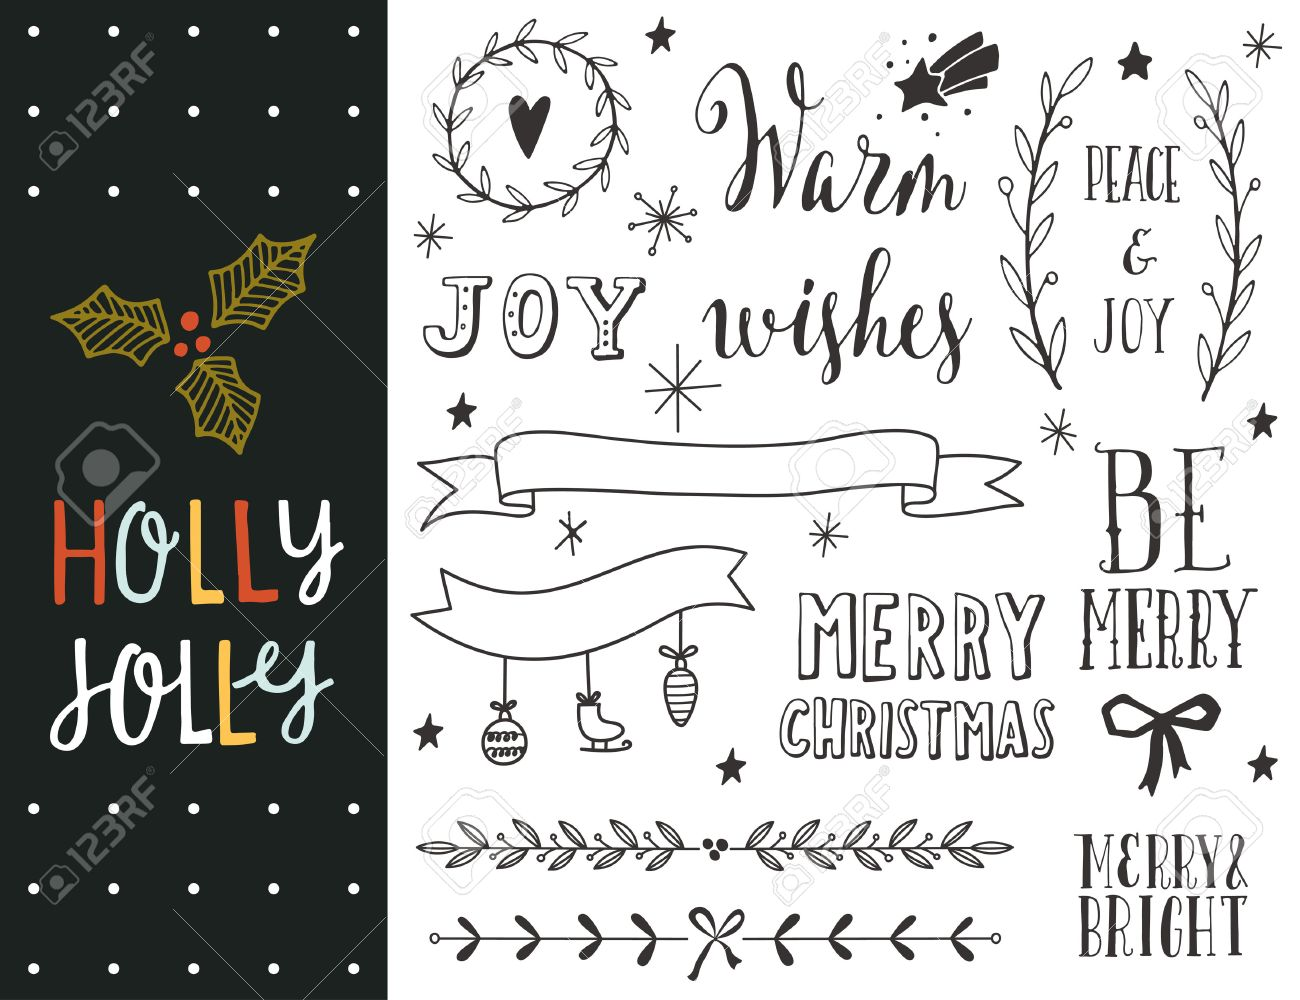 Holly Jolly. Hand drawn Christmas holiday collection with lettering and decoration elements for greeting cards, stationary, gift tags, scrapbooking, invitations. - 47392722